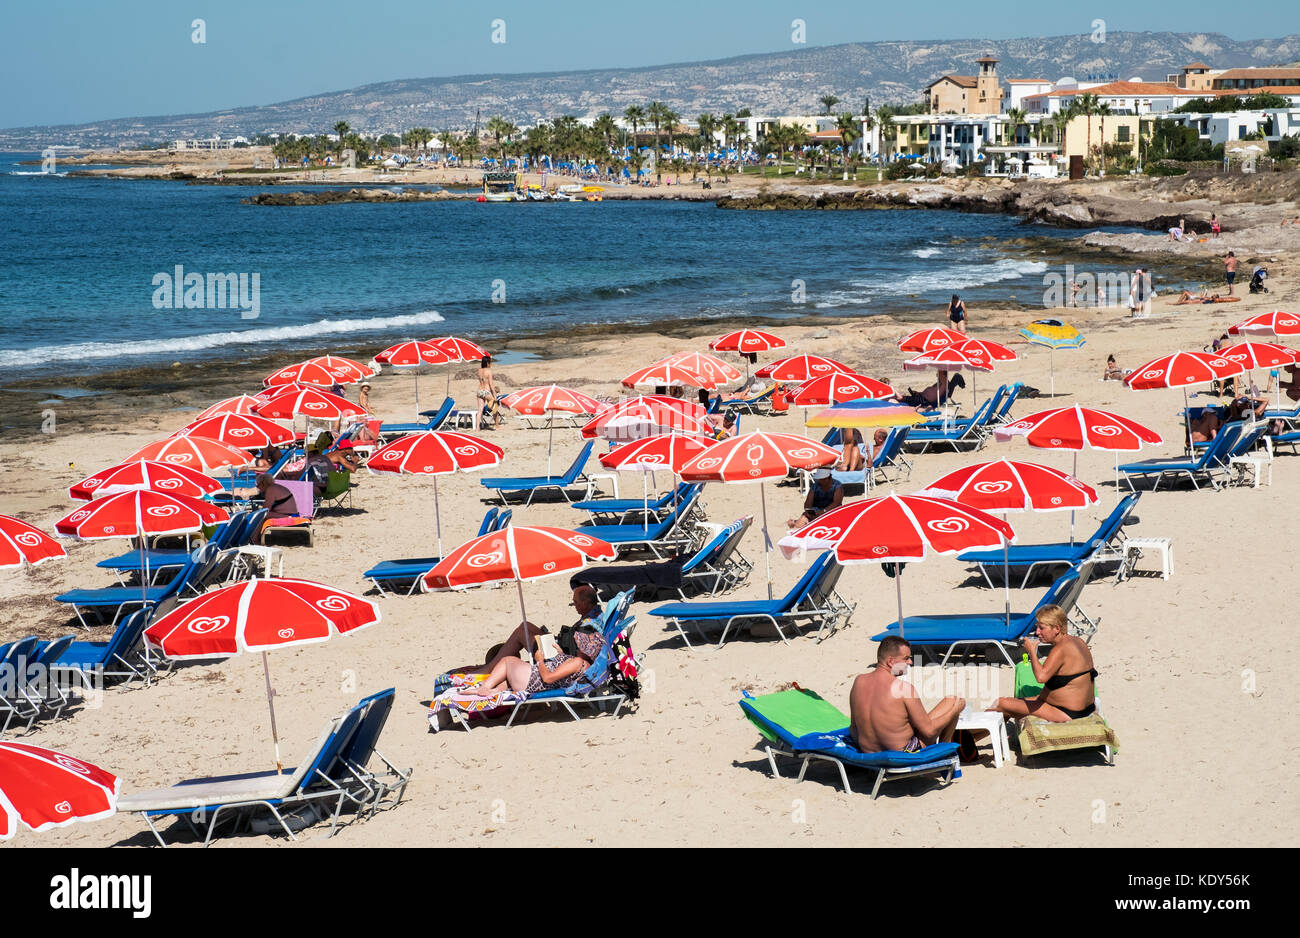 Holidaymakers bask in the sun on the Paphos Municipal beach in Kath Paphos, Cyprus. - Stock Image